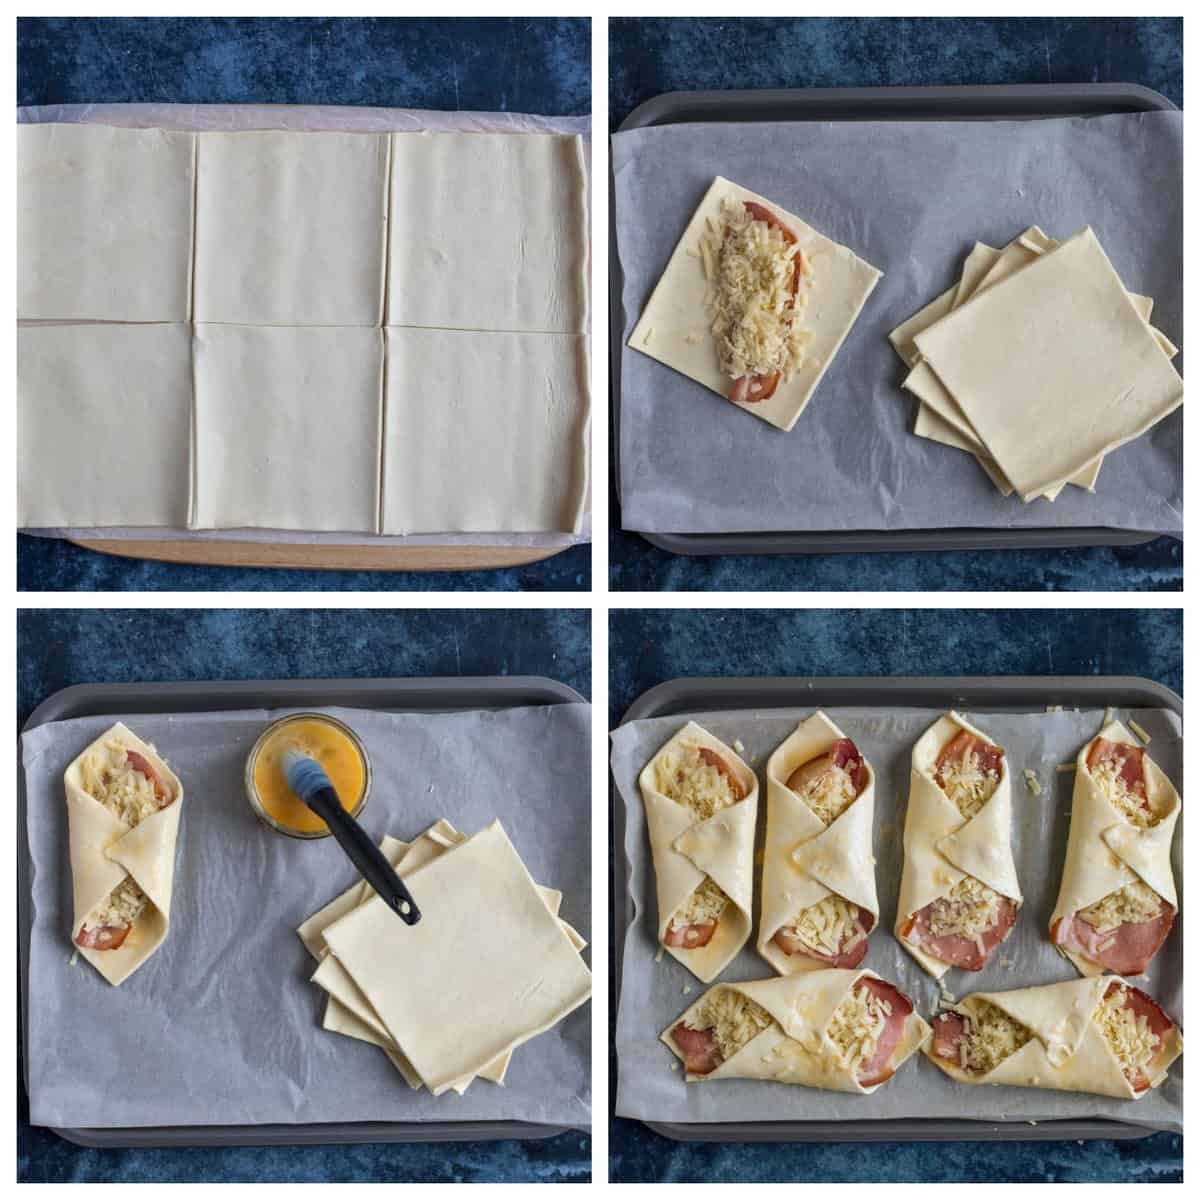 Step by step photo instructions for making the cheese and bacon turnovers.